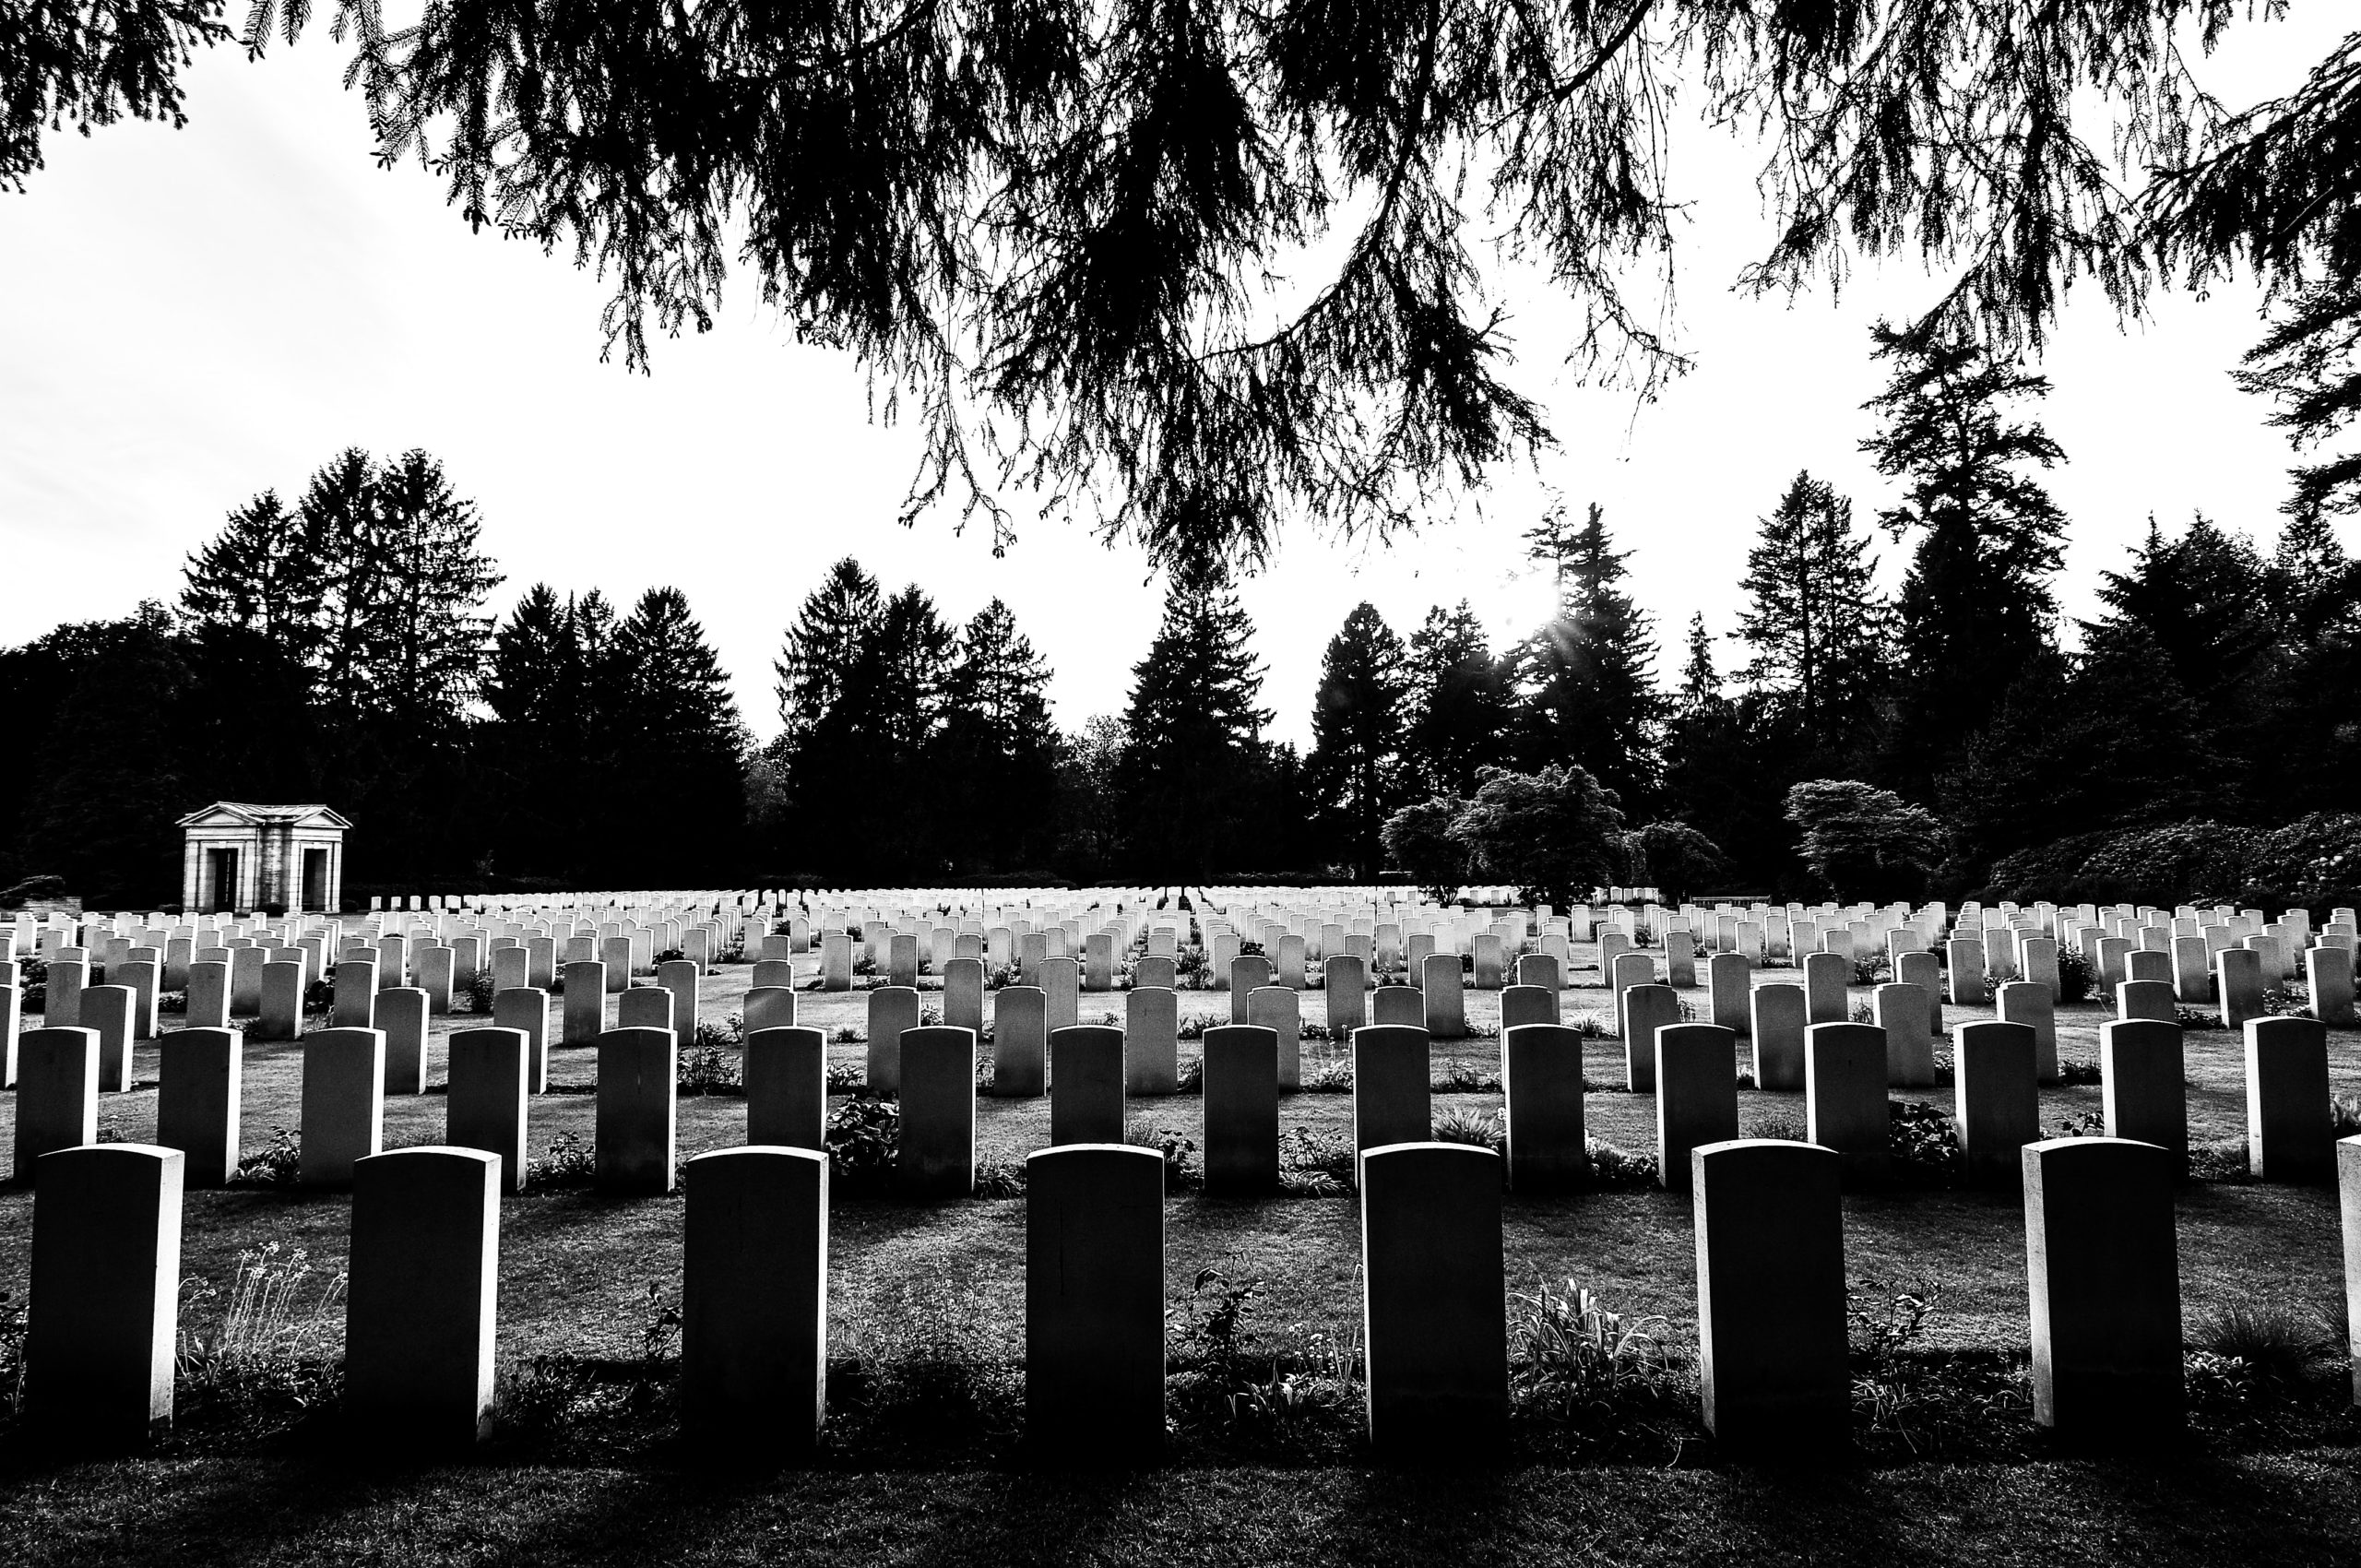 What Do I Need to Do after the Death of My Spouse?